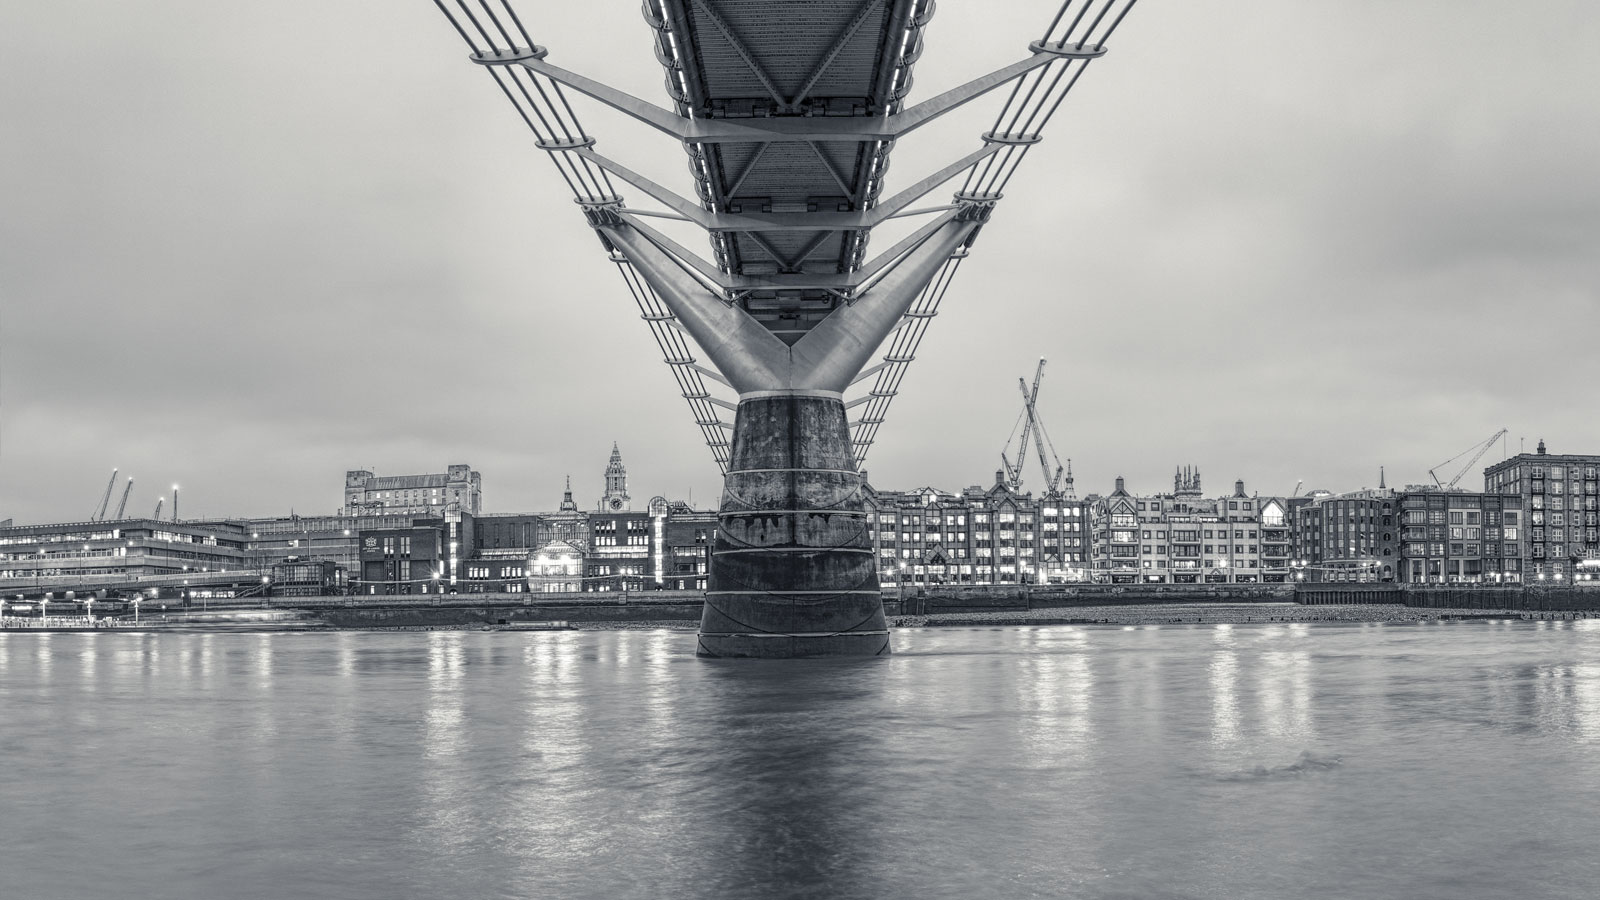 Under the Bridge - large-scale London cityscapes - Will Pearson - London Fine Art Photography